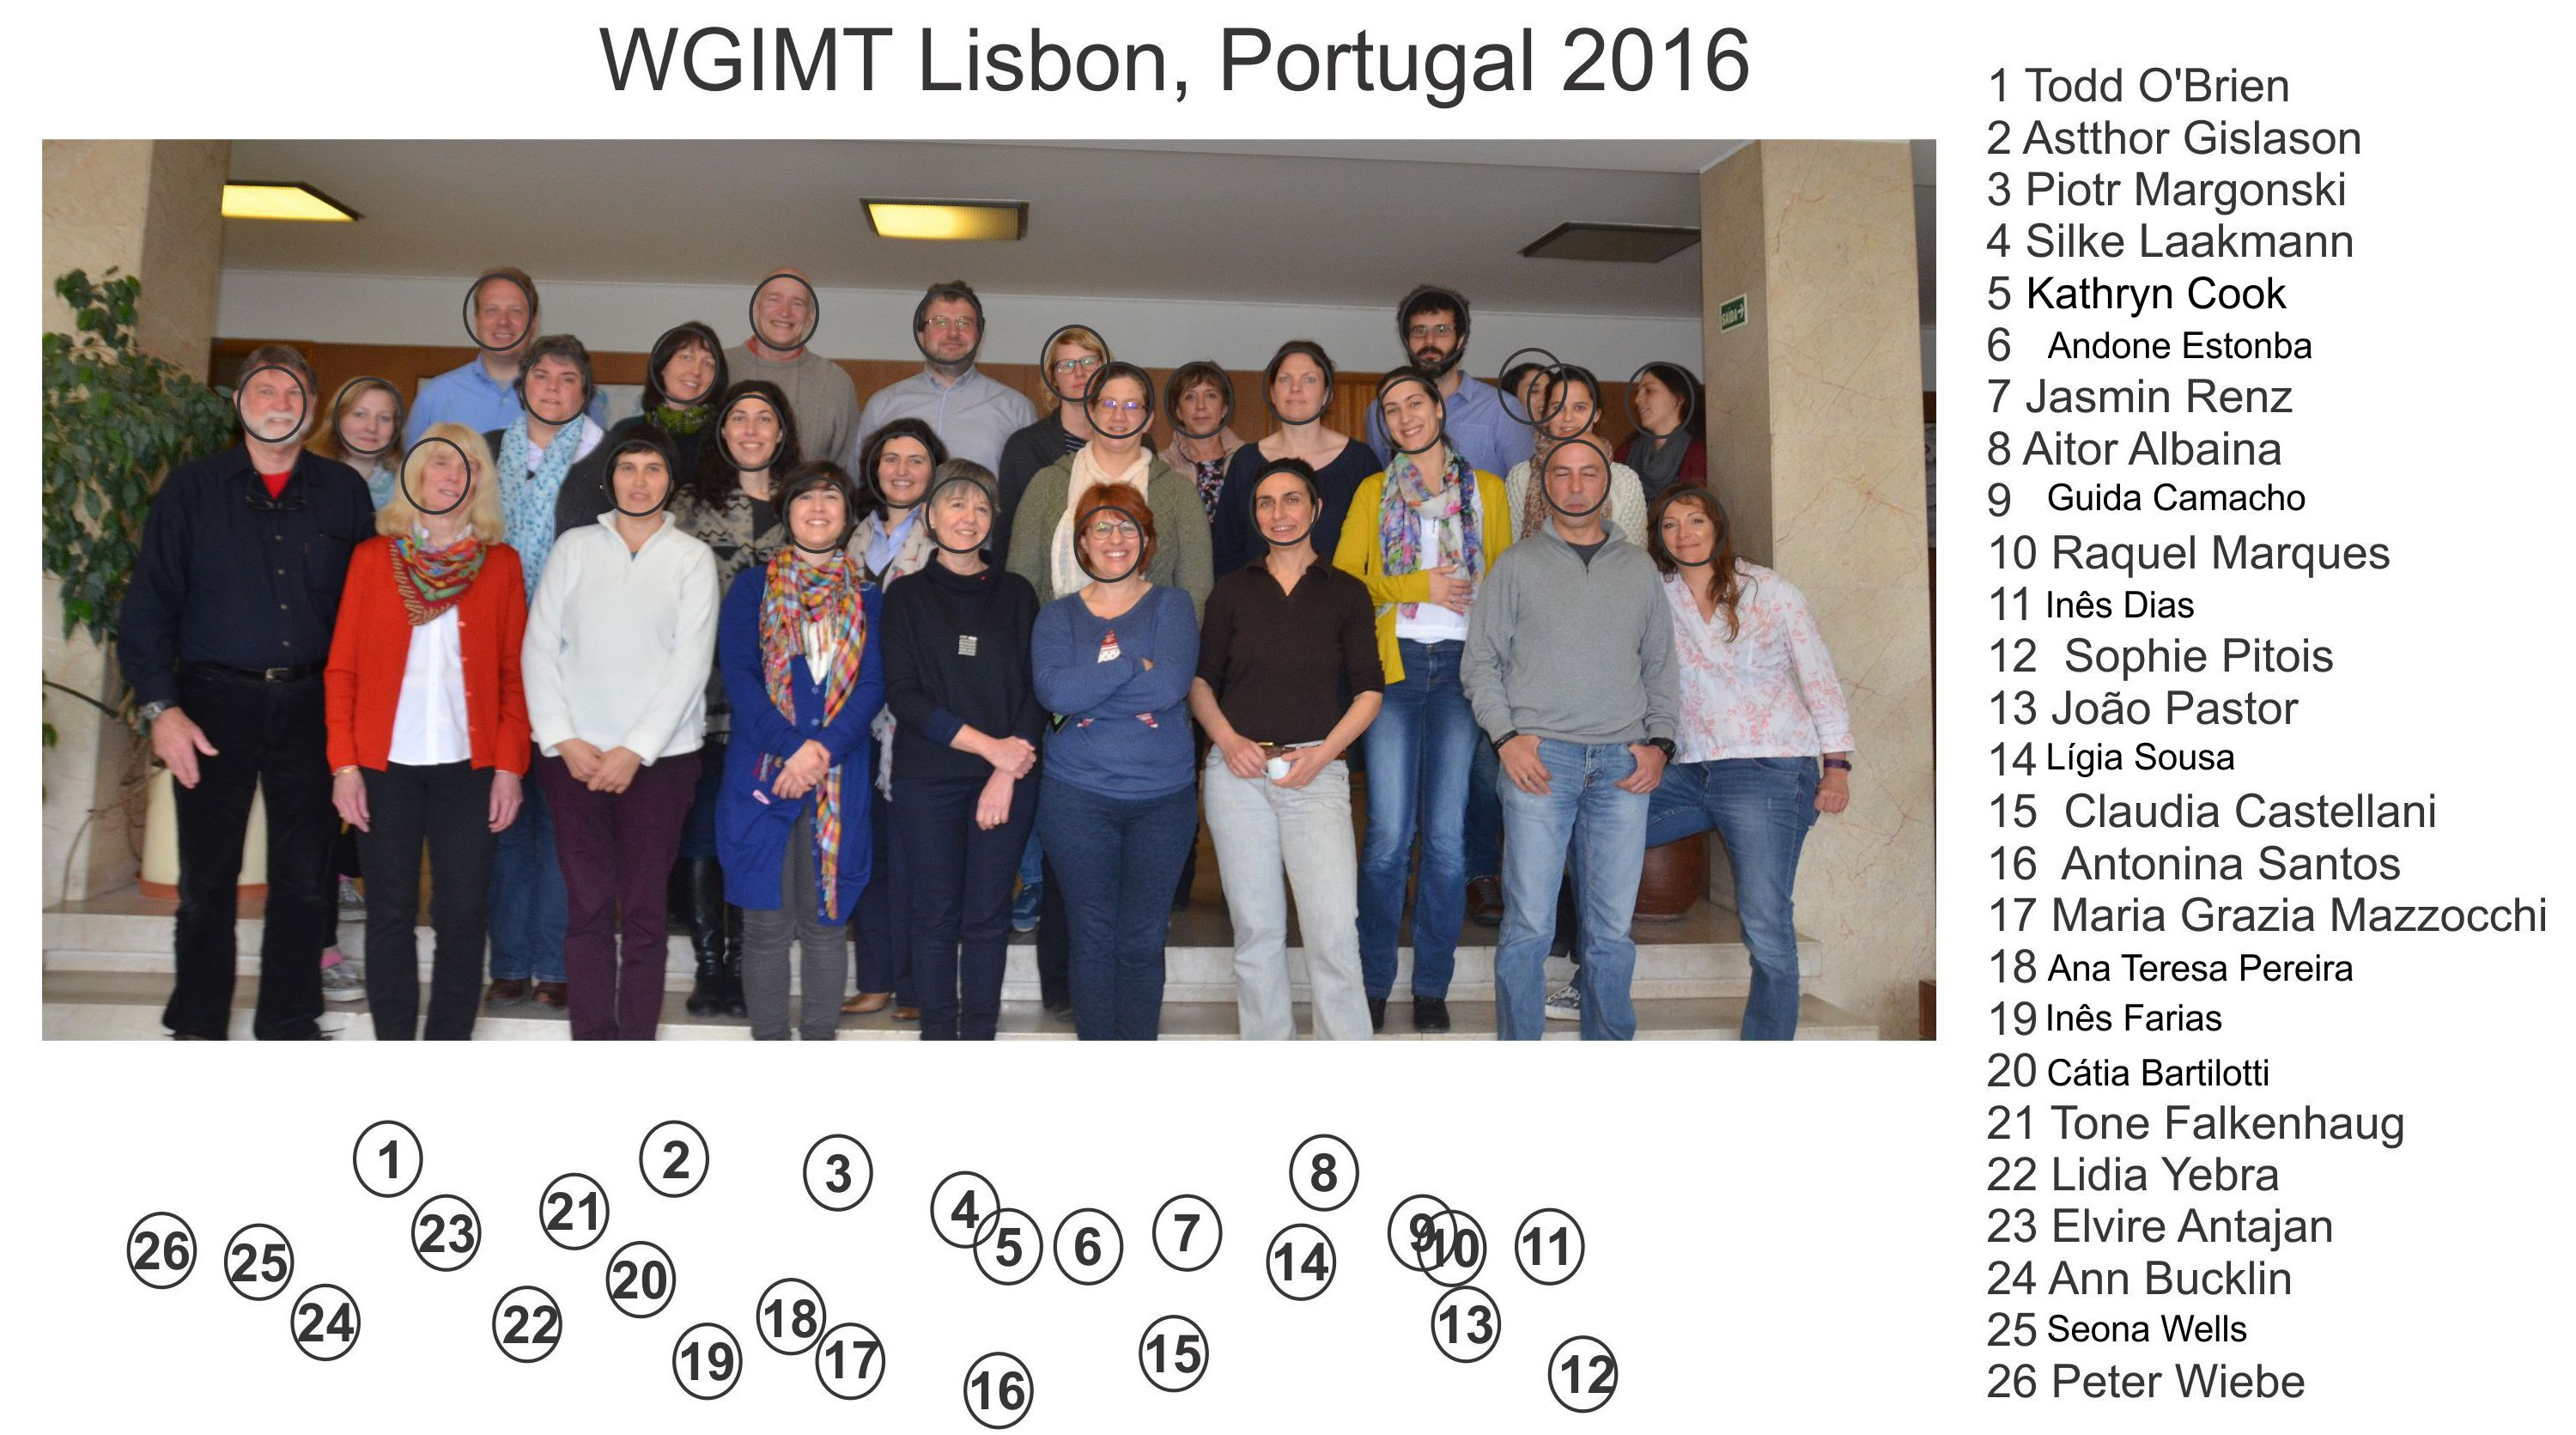 wgimt 2016 portugal with names